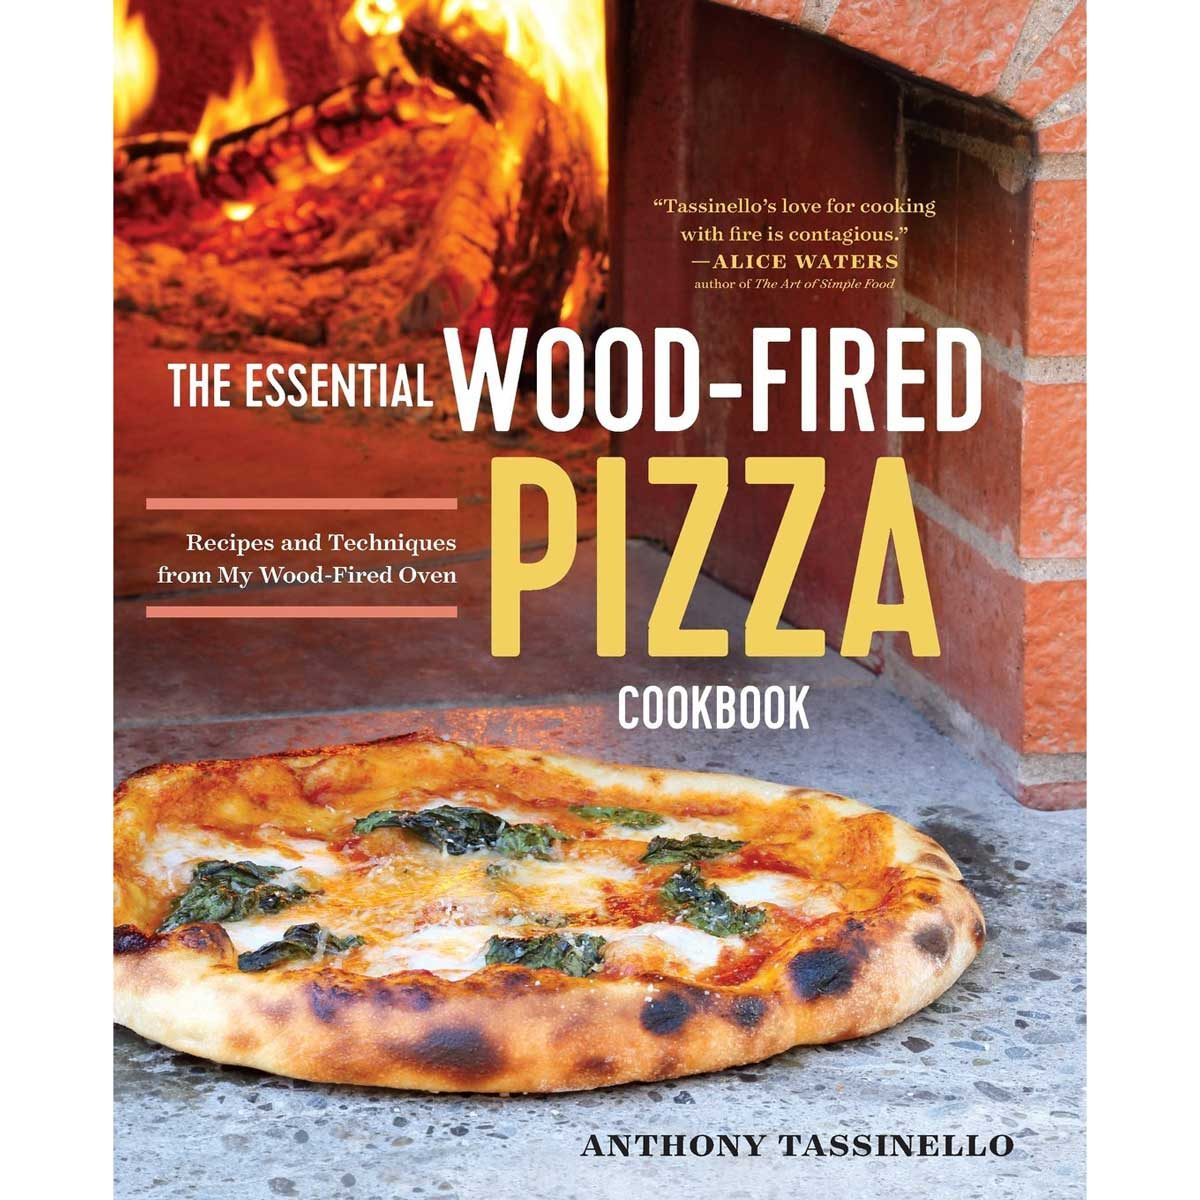 Pizza cook book cover